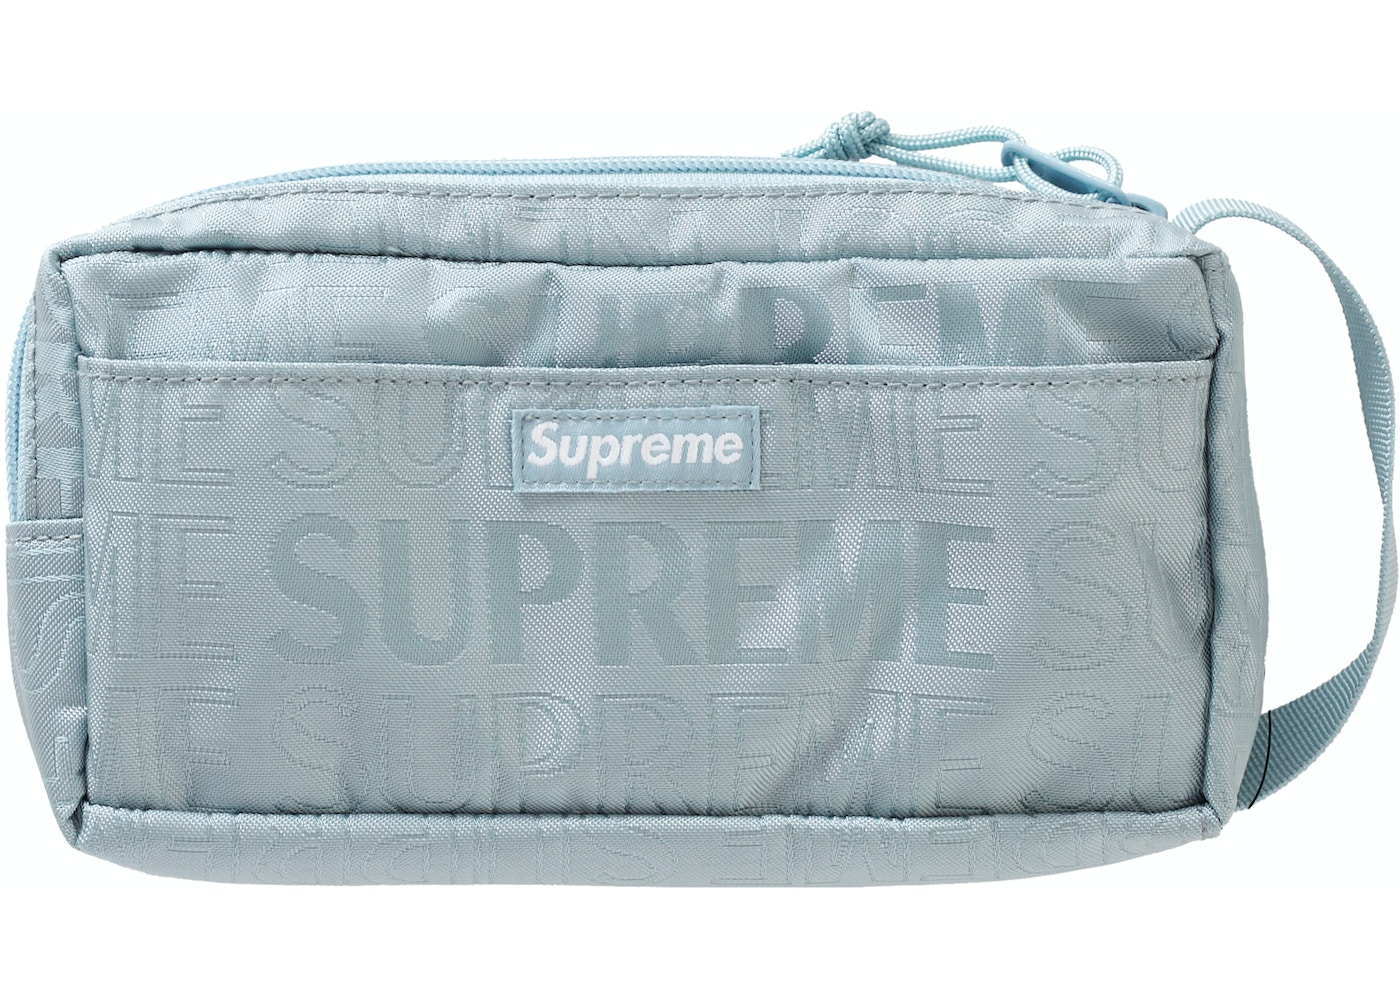 5da2c43576a7 Sell. or Ask. View All Bids. Supreme Organizer Pouch (SS19) Ice